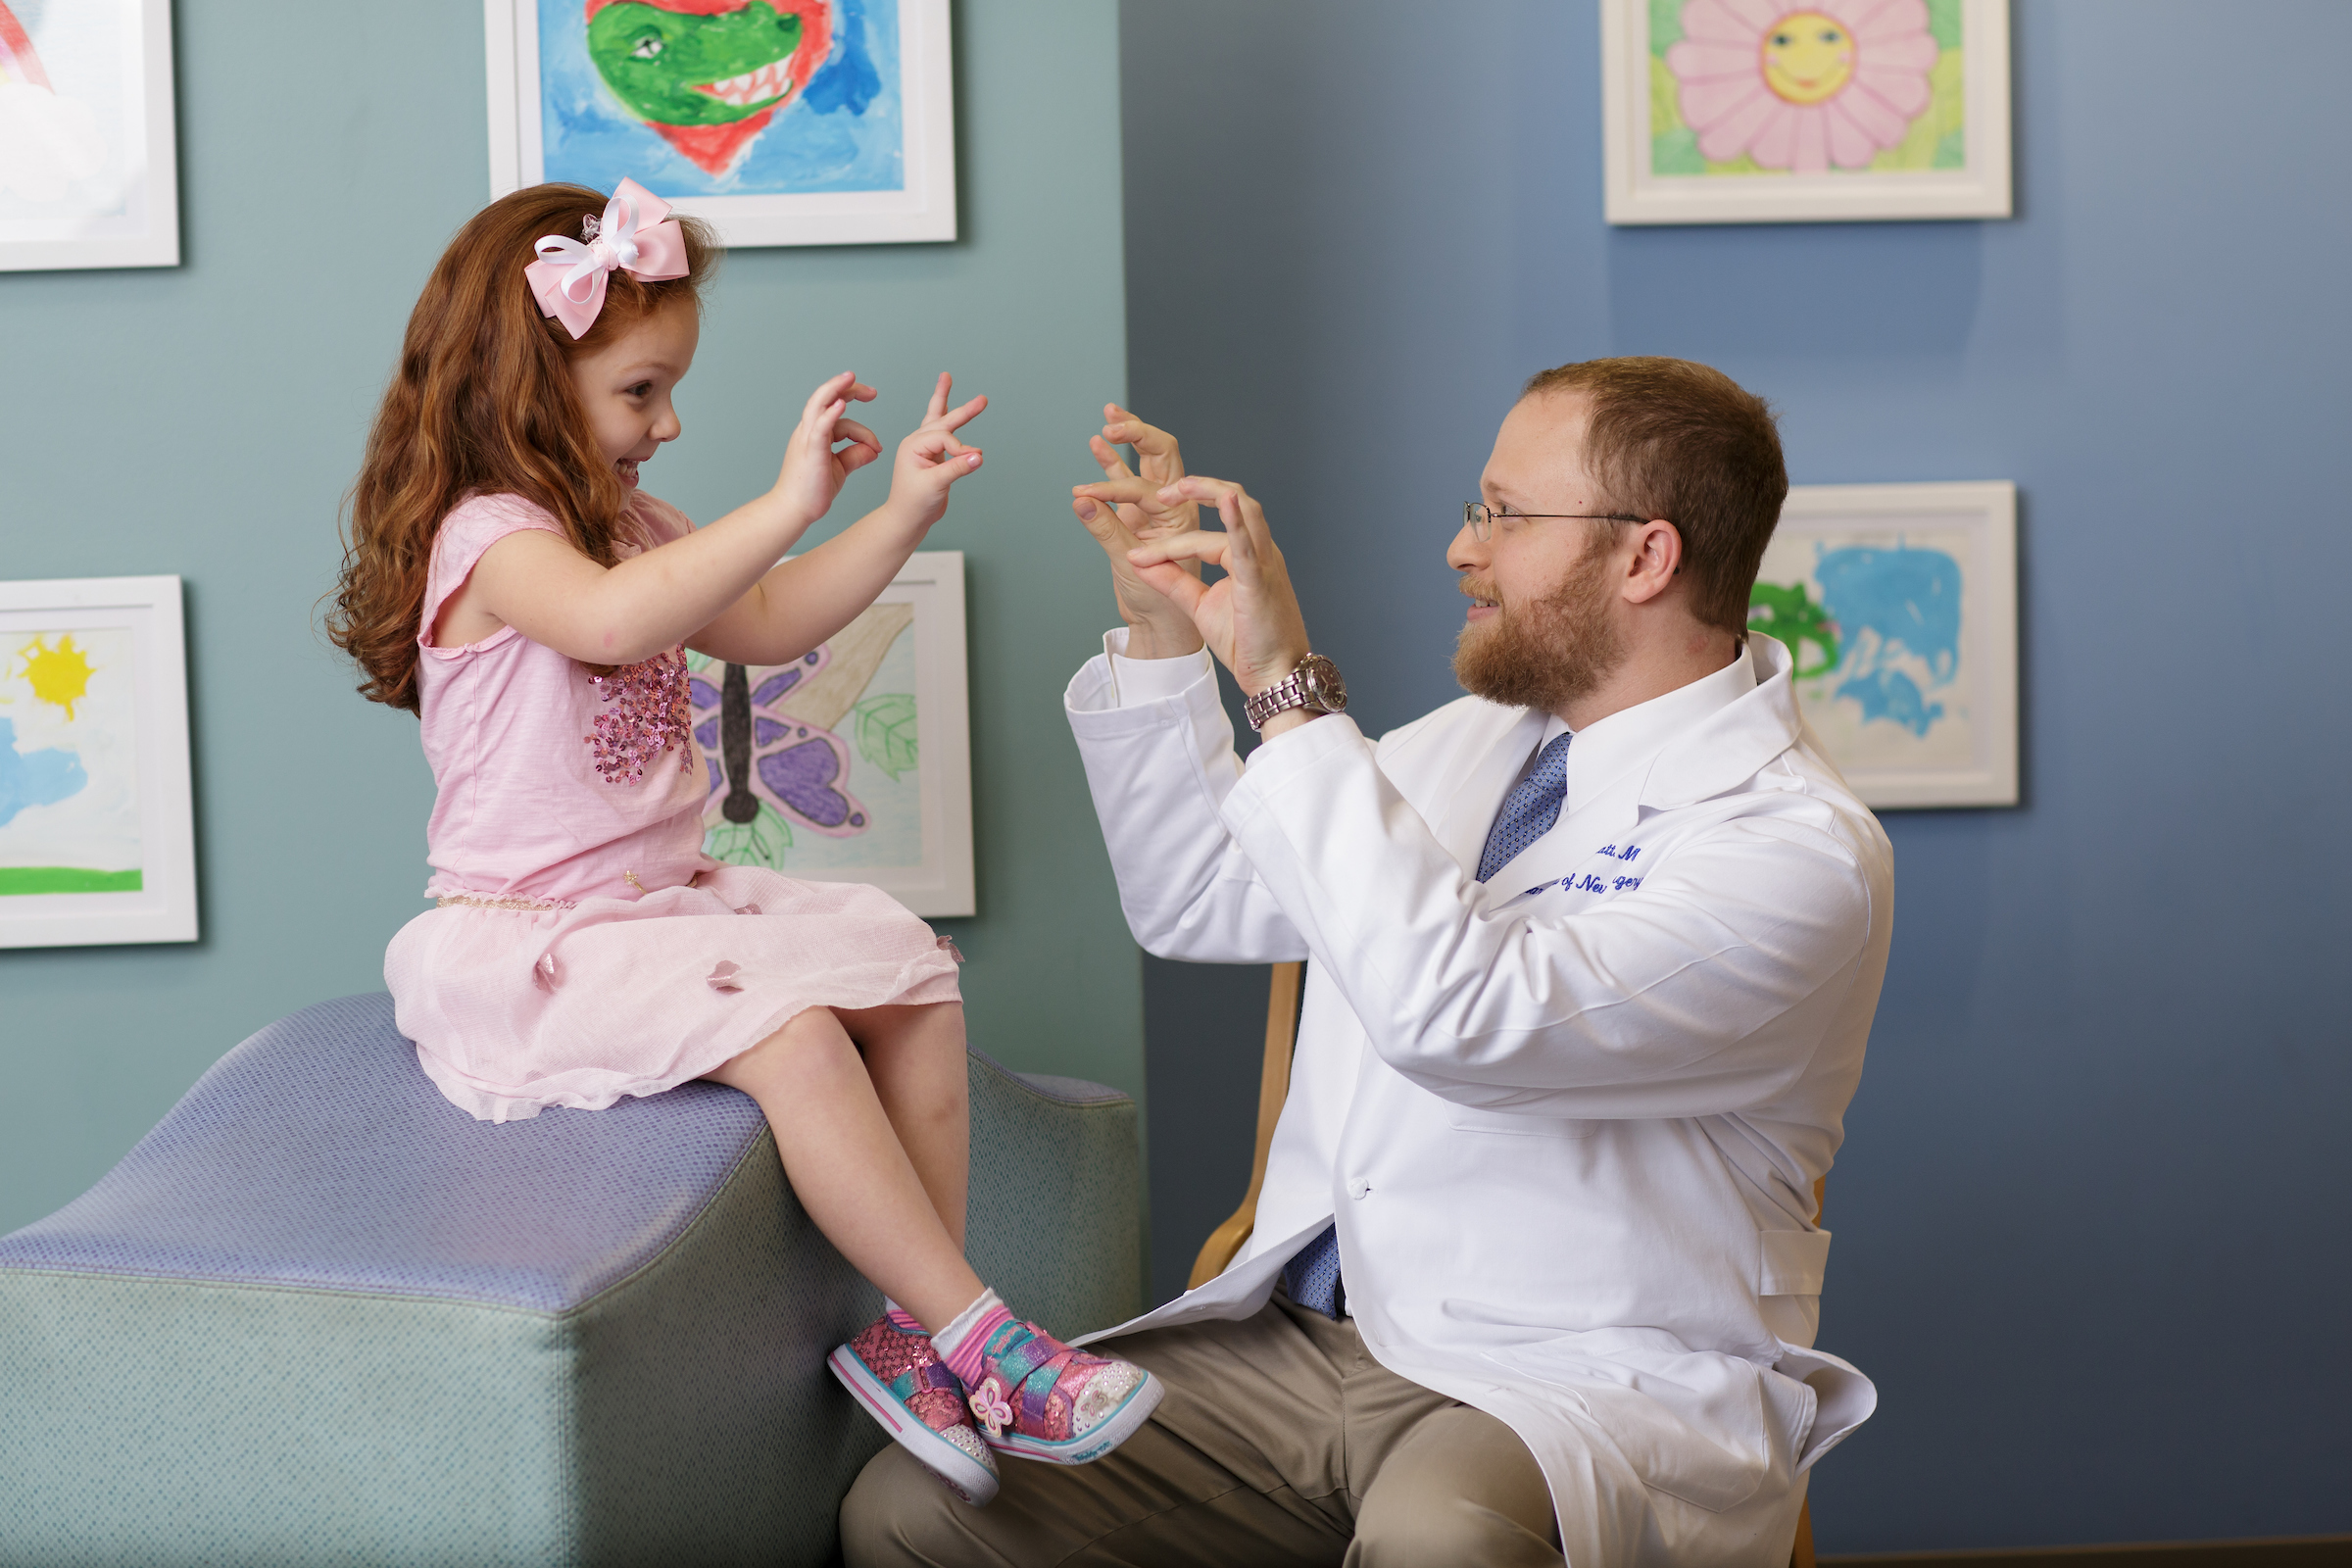 UF Health Children Hospital neurosurgeon makes a funny face with a young girl in a tutu.